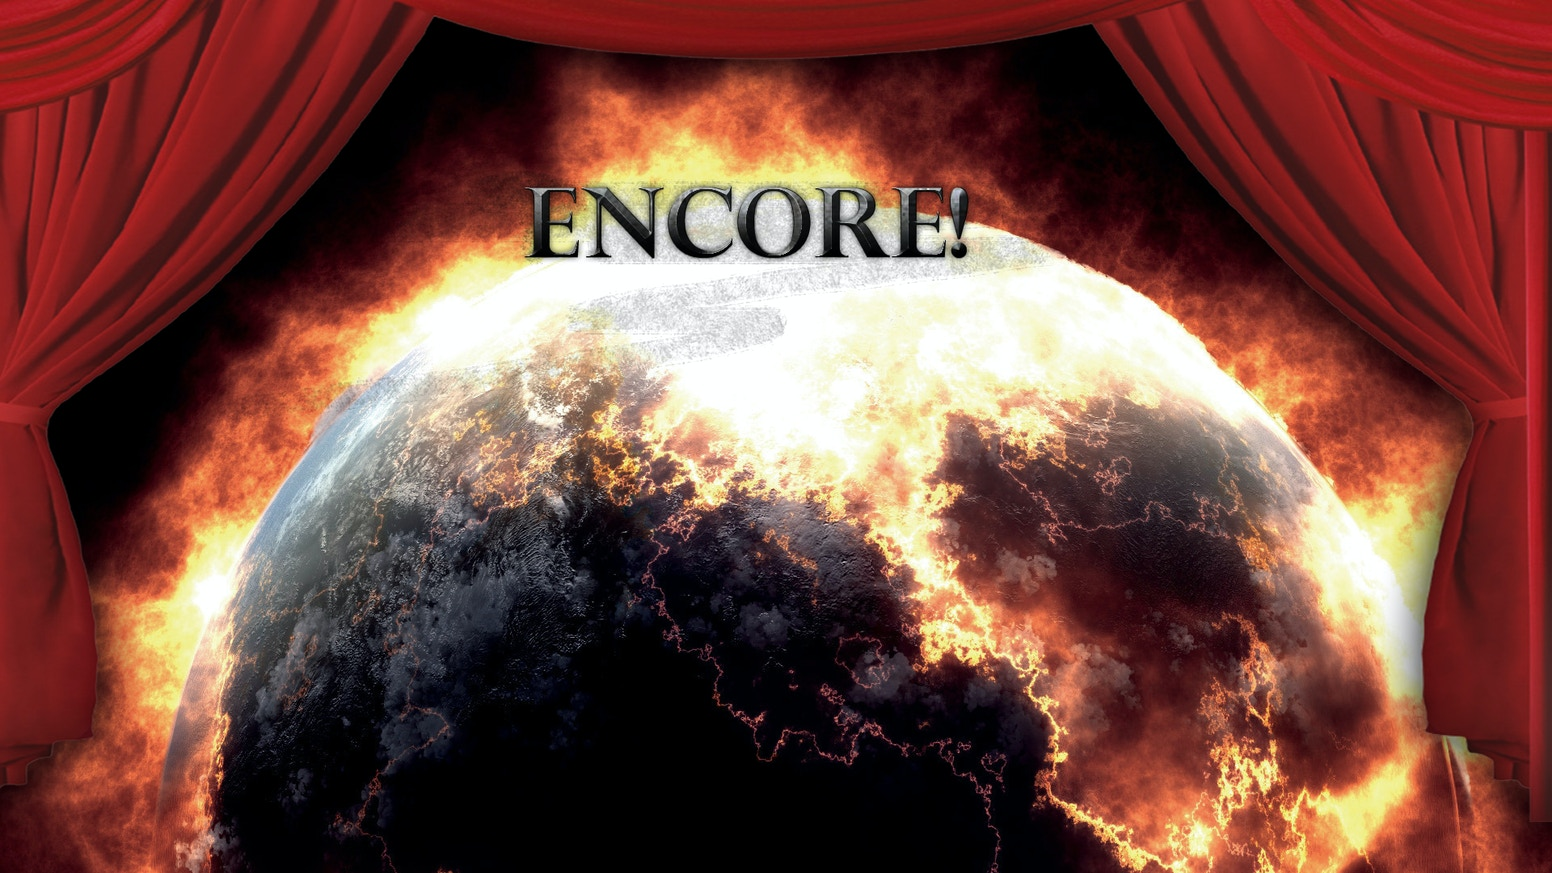 Encore! - A story based RPG with 40 different endings by